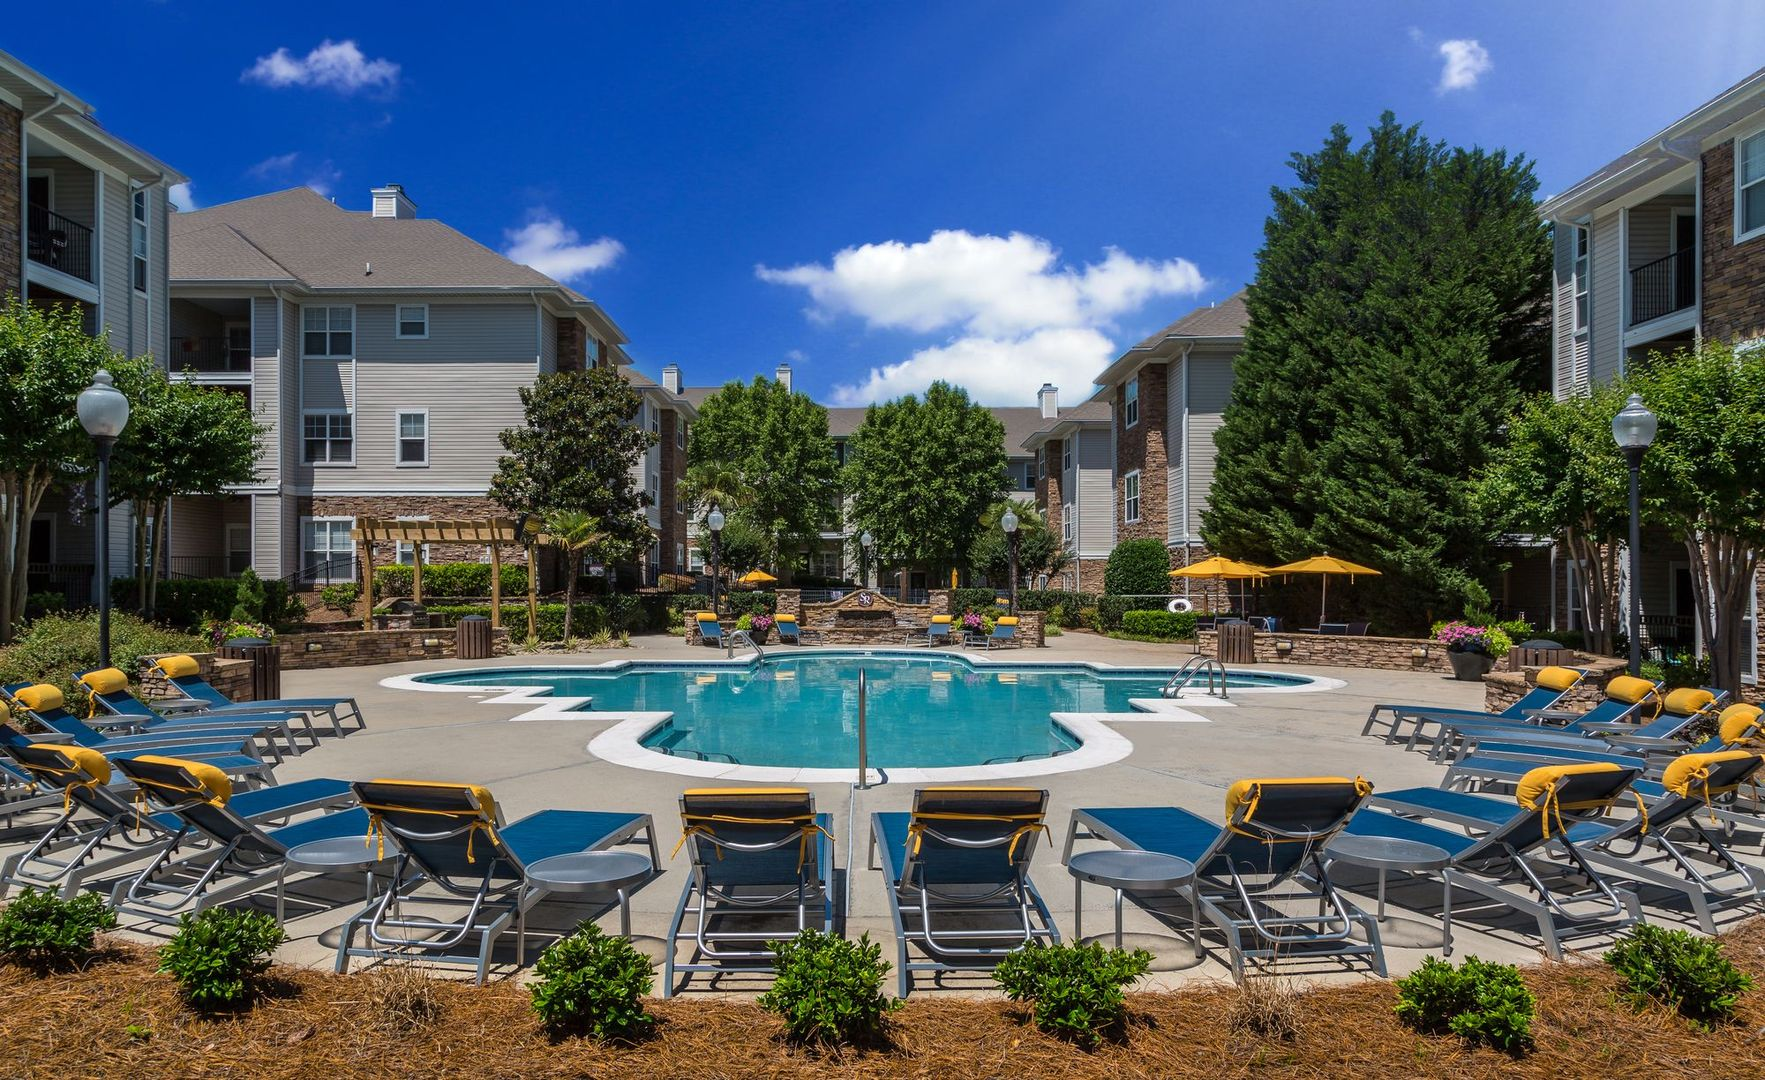 Apartments for Rent in Charlotte, NC | Stone Ridge - Home